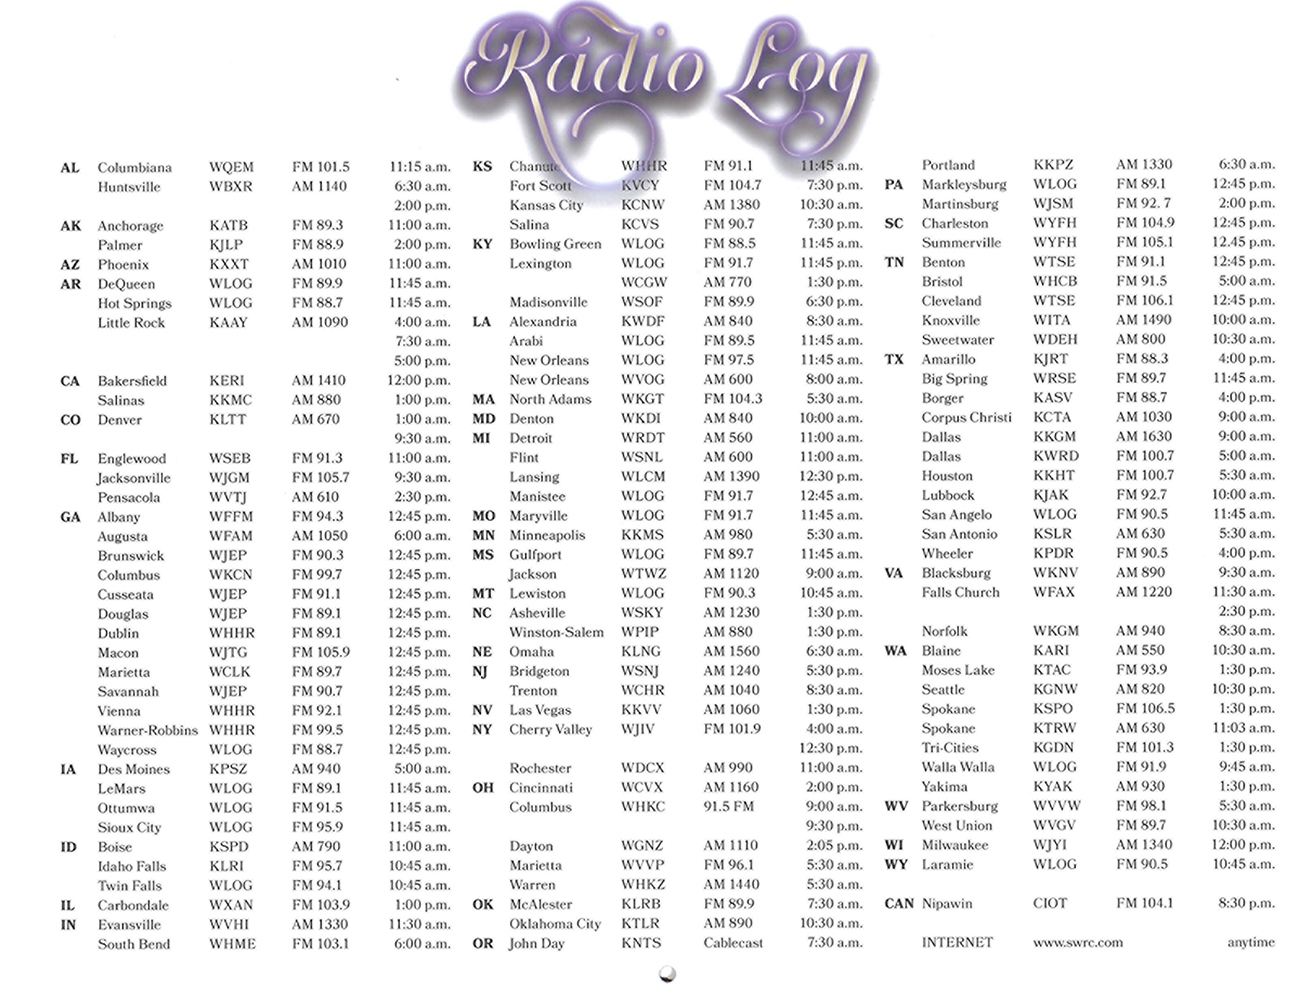 2016 Prophecy Calendar: Radio Log